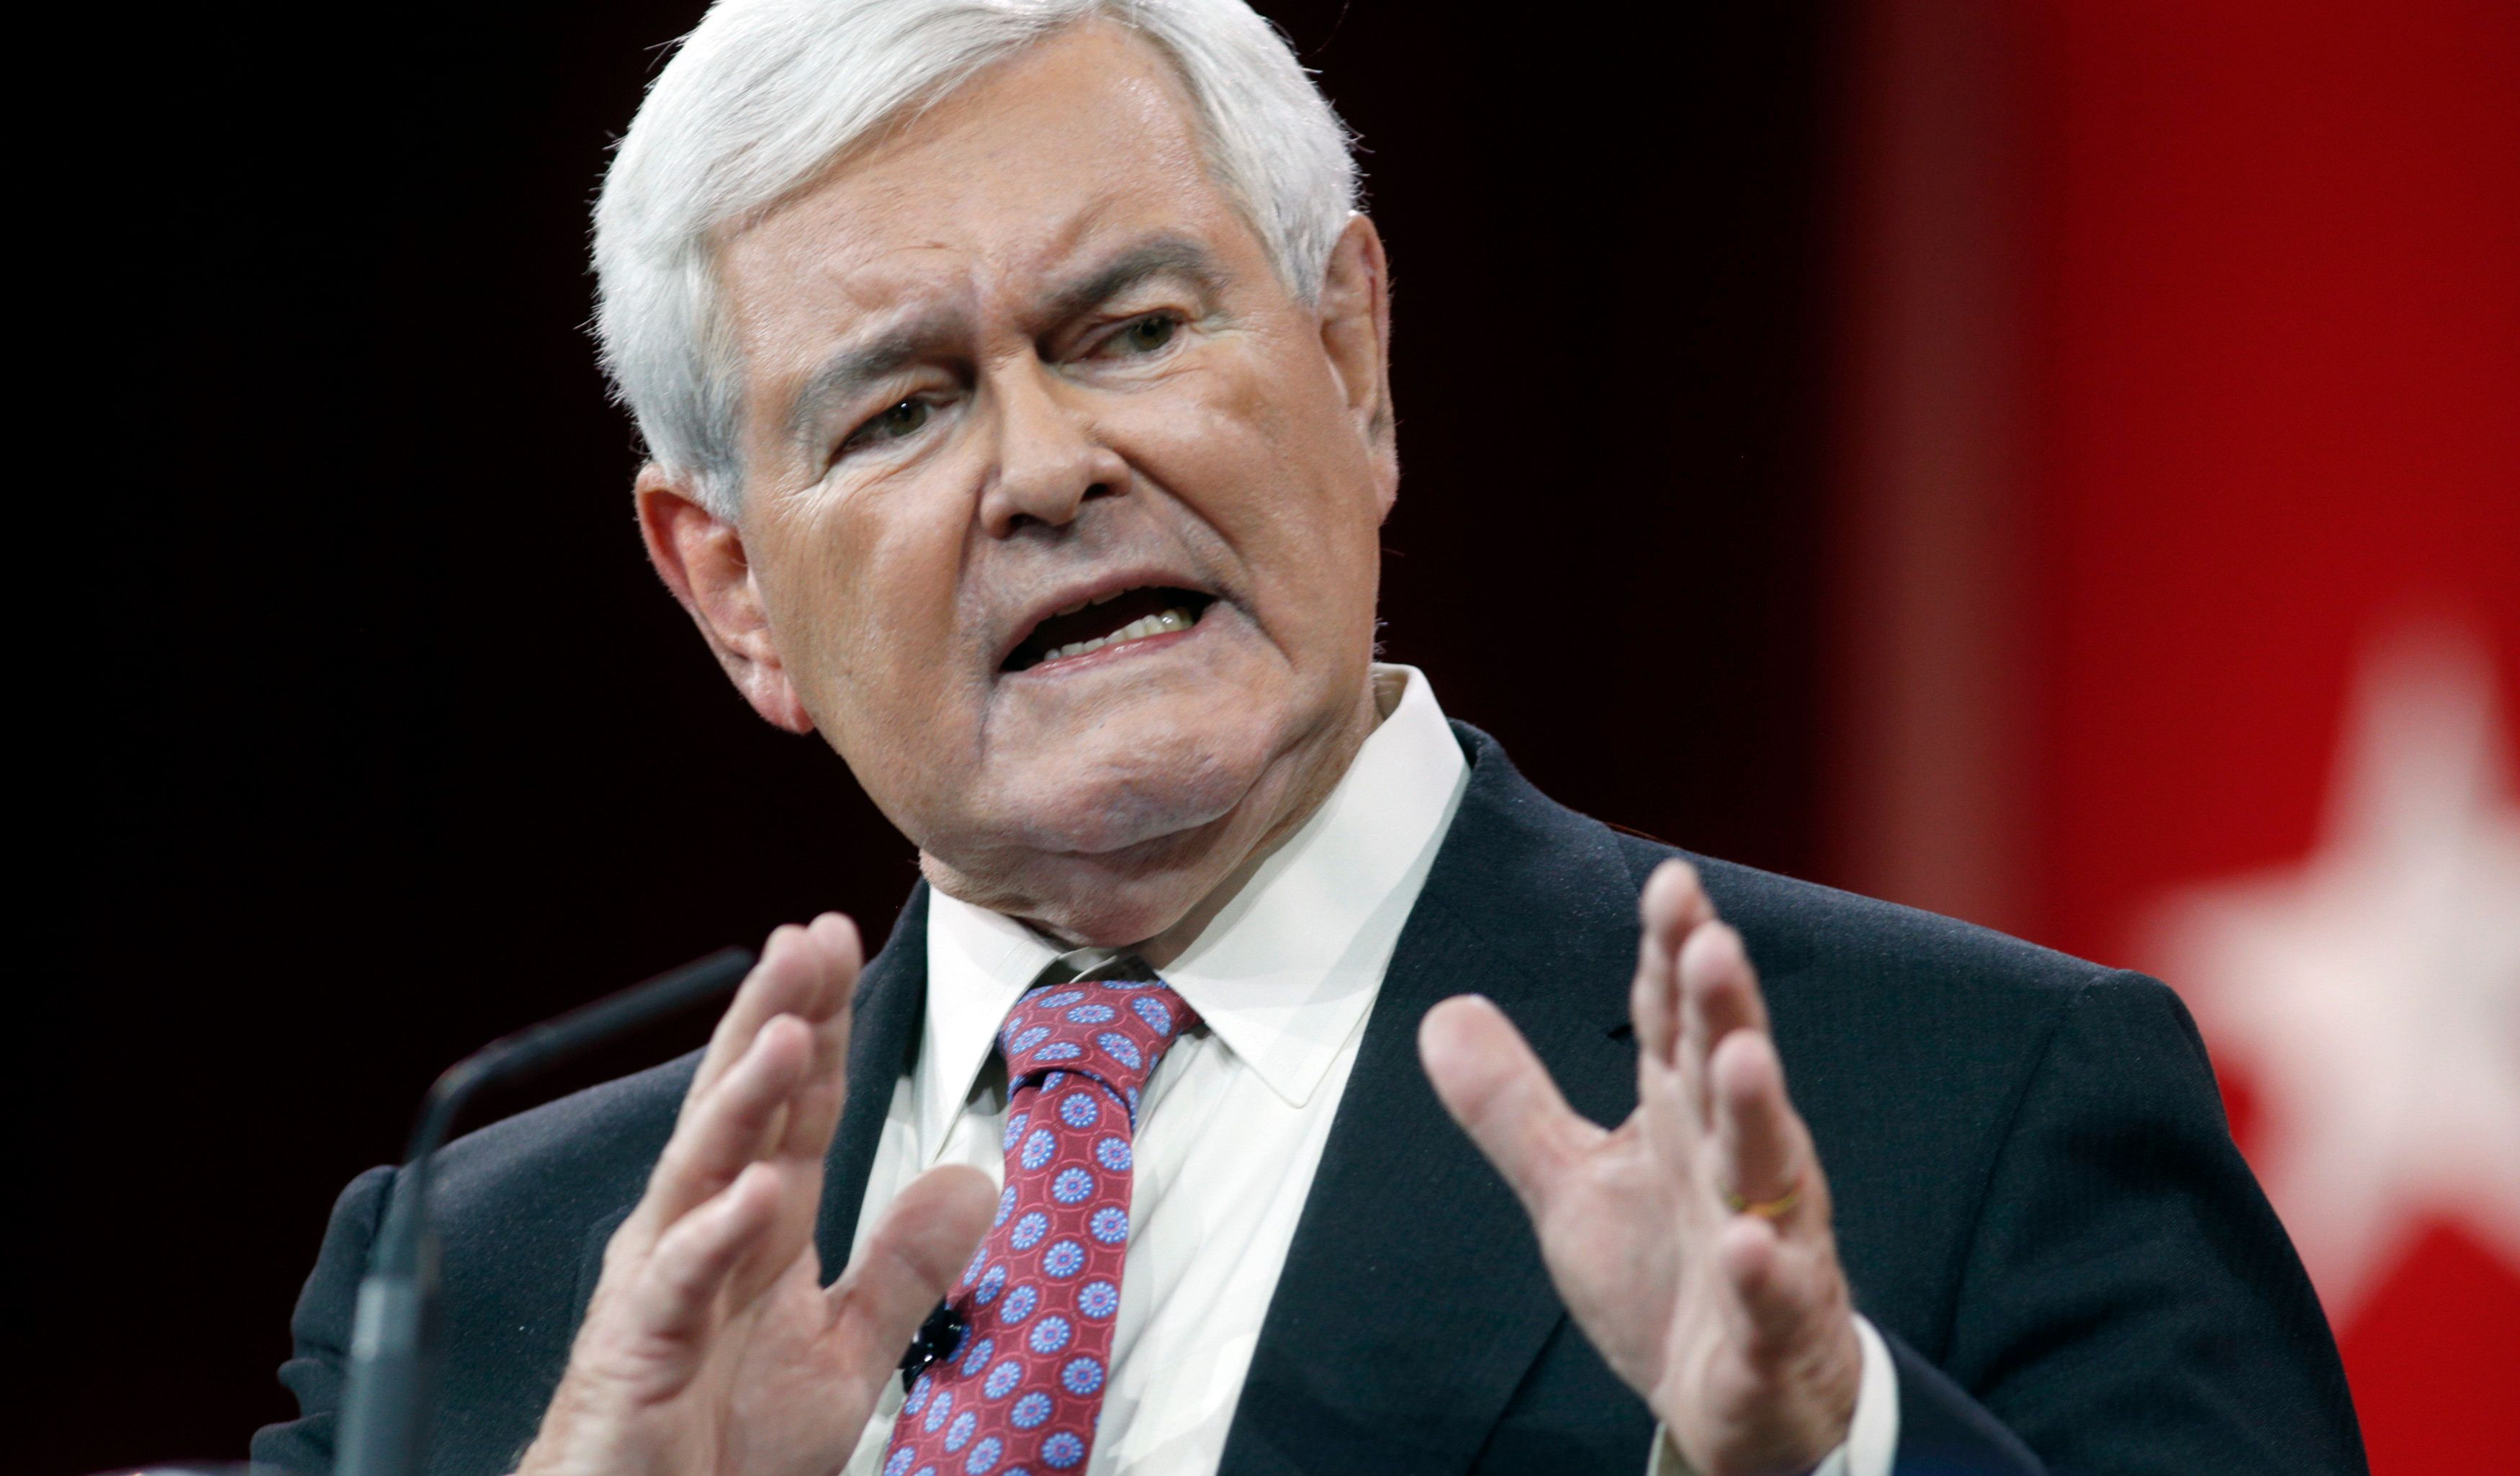 Former Speaker of the House Newt Gingrich addresses the Conservative Political Action Conference (CPAC) at National Harbor in Maryland February 27, 2015.  REUTERS/Kevin Lamarque  (UNITED STATES - Tags: POLITICS)